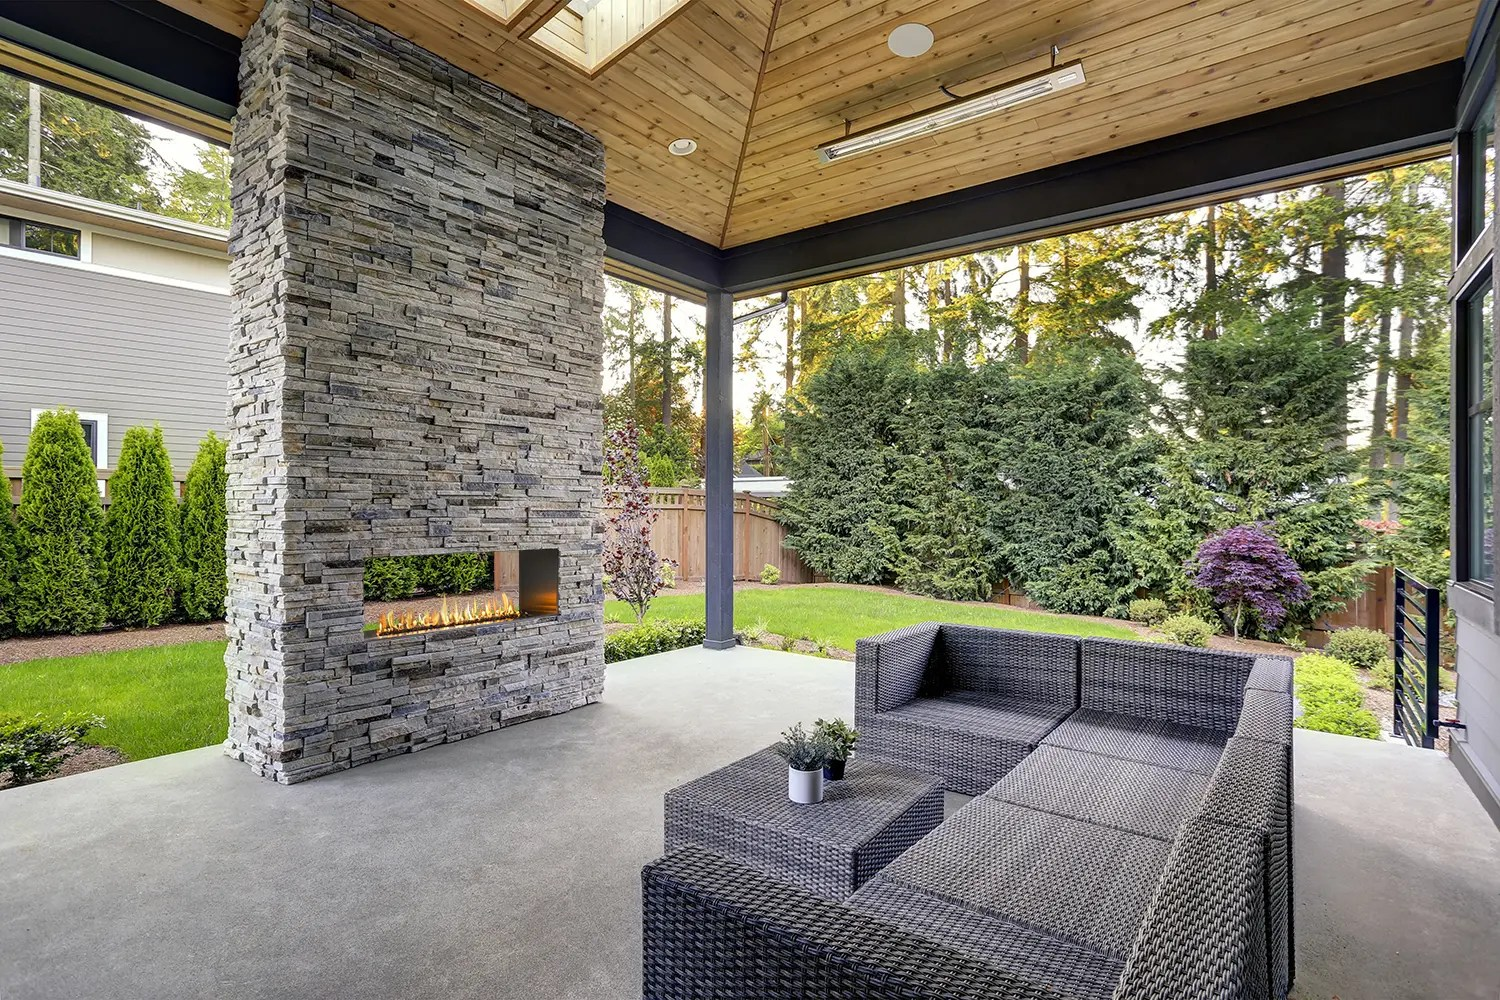 J Series See-Through: Outdoor Gas Fireplace - European Home on Outdoor Gas Fireplace For Deck id=42558